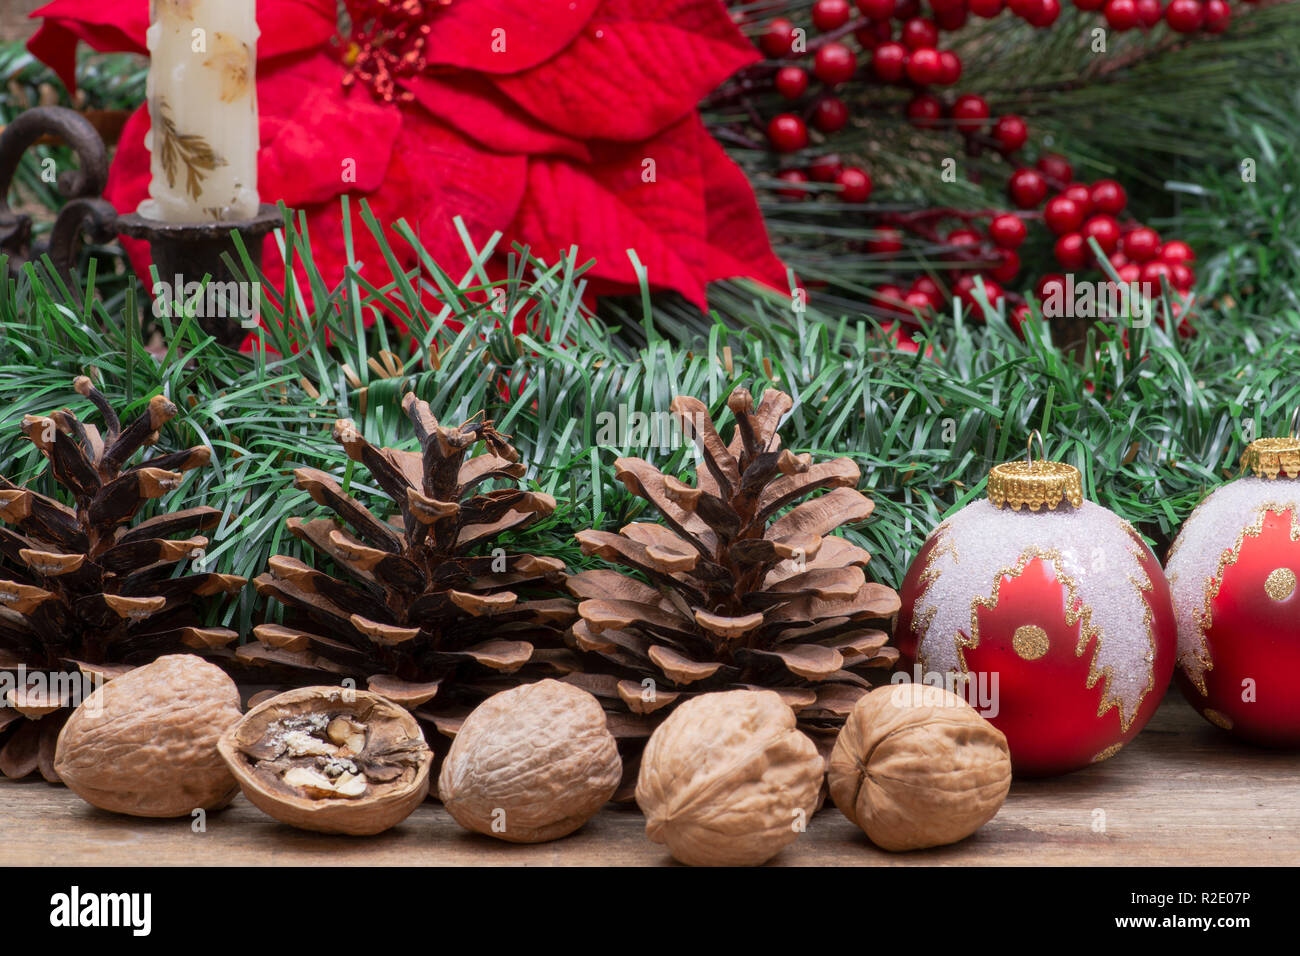 0017a4cb8c90 Winter holiday decoration: Blooming Red Poinsettia, Pine, Berry bush ...